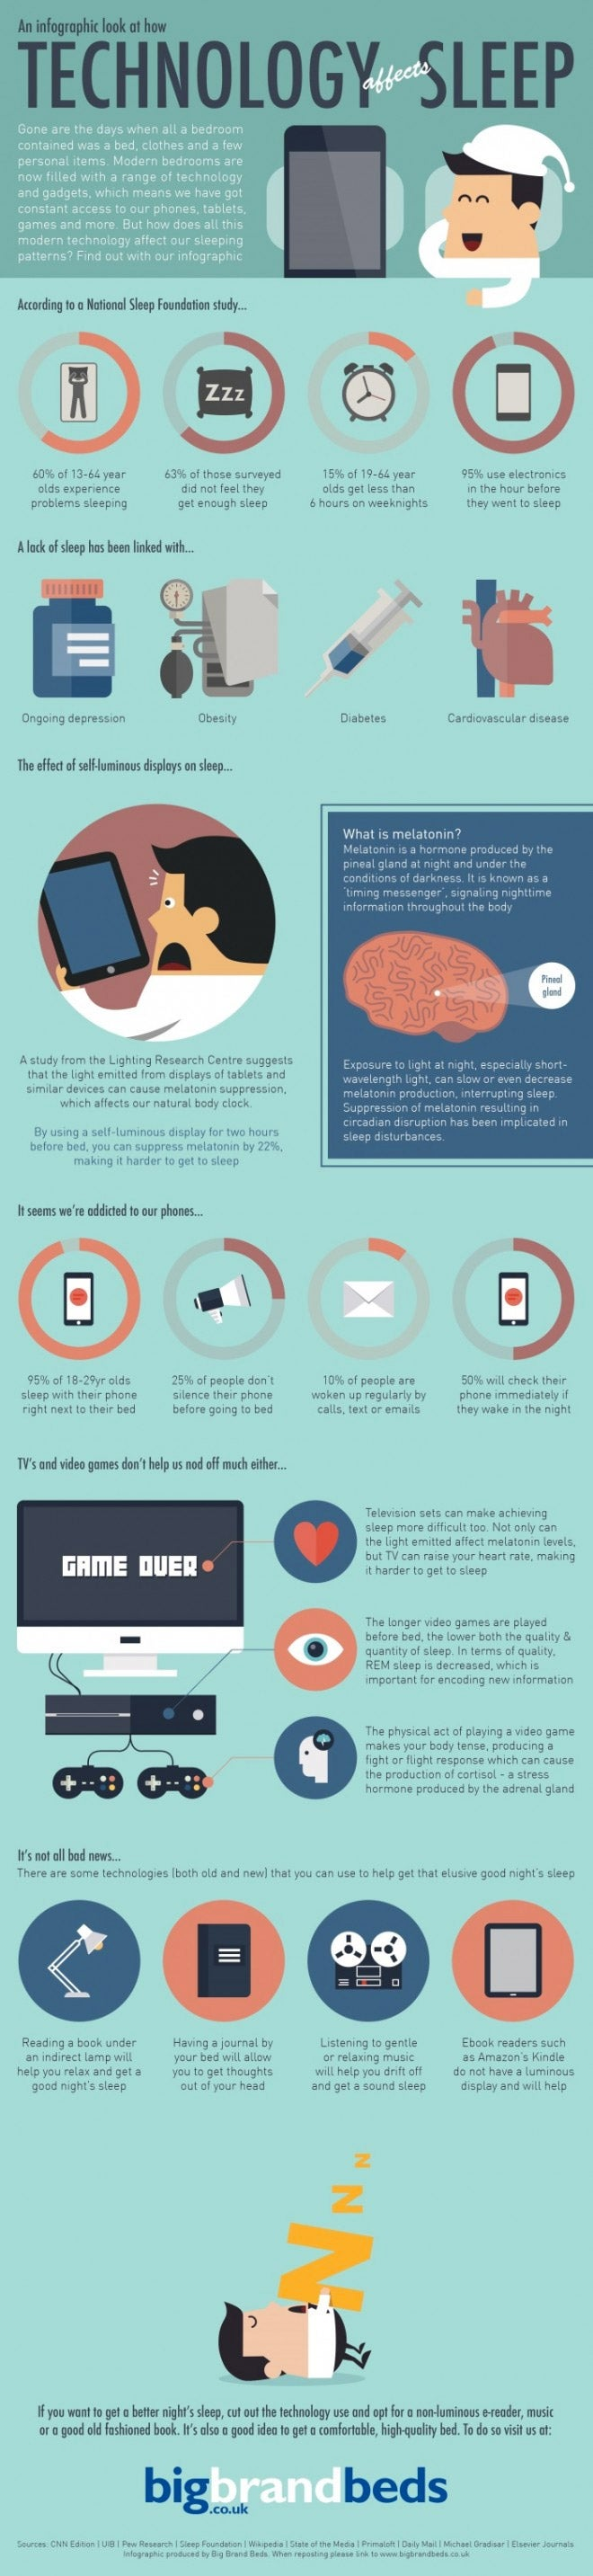 How Technology Is Ruining Sleep -- and How to Fix the ...